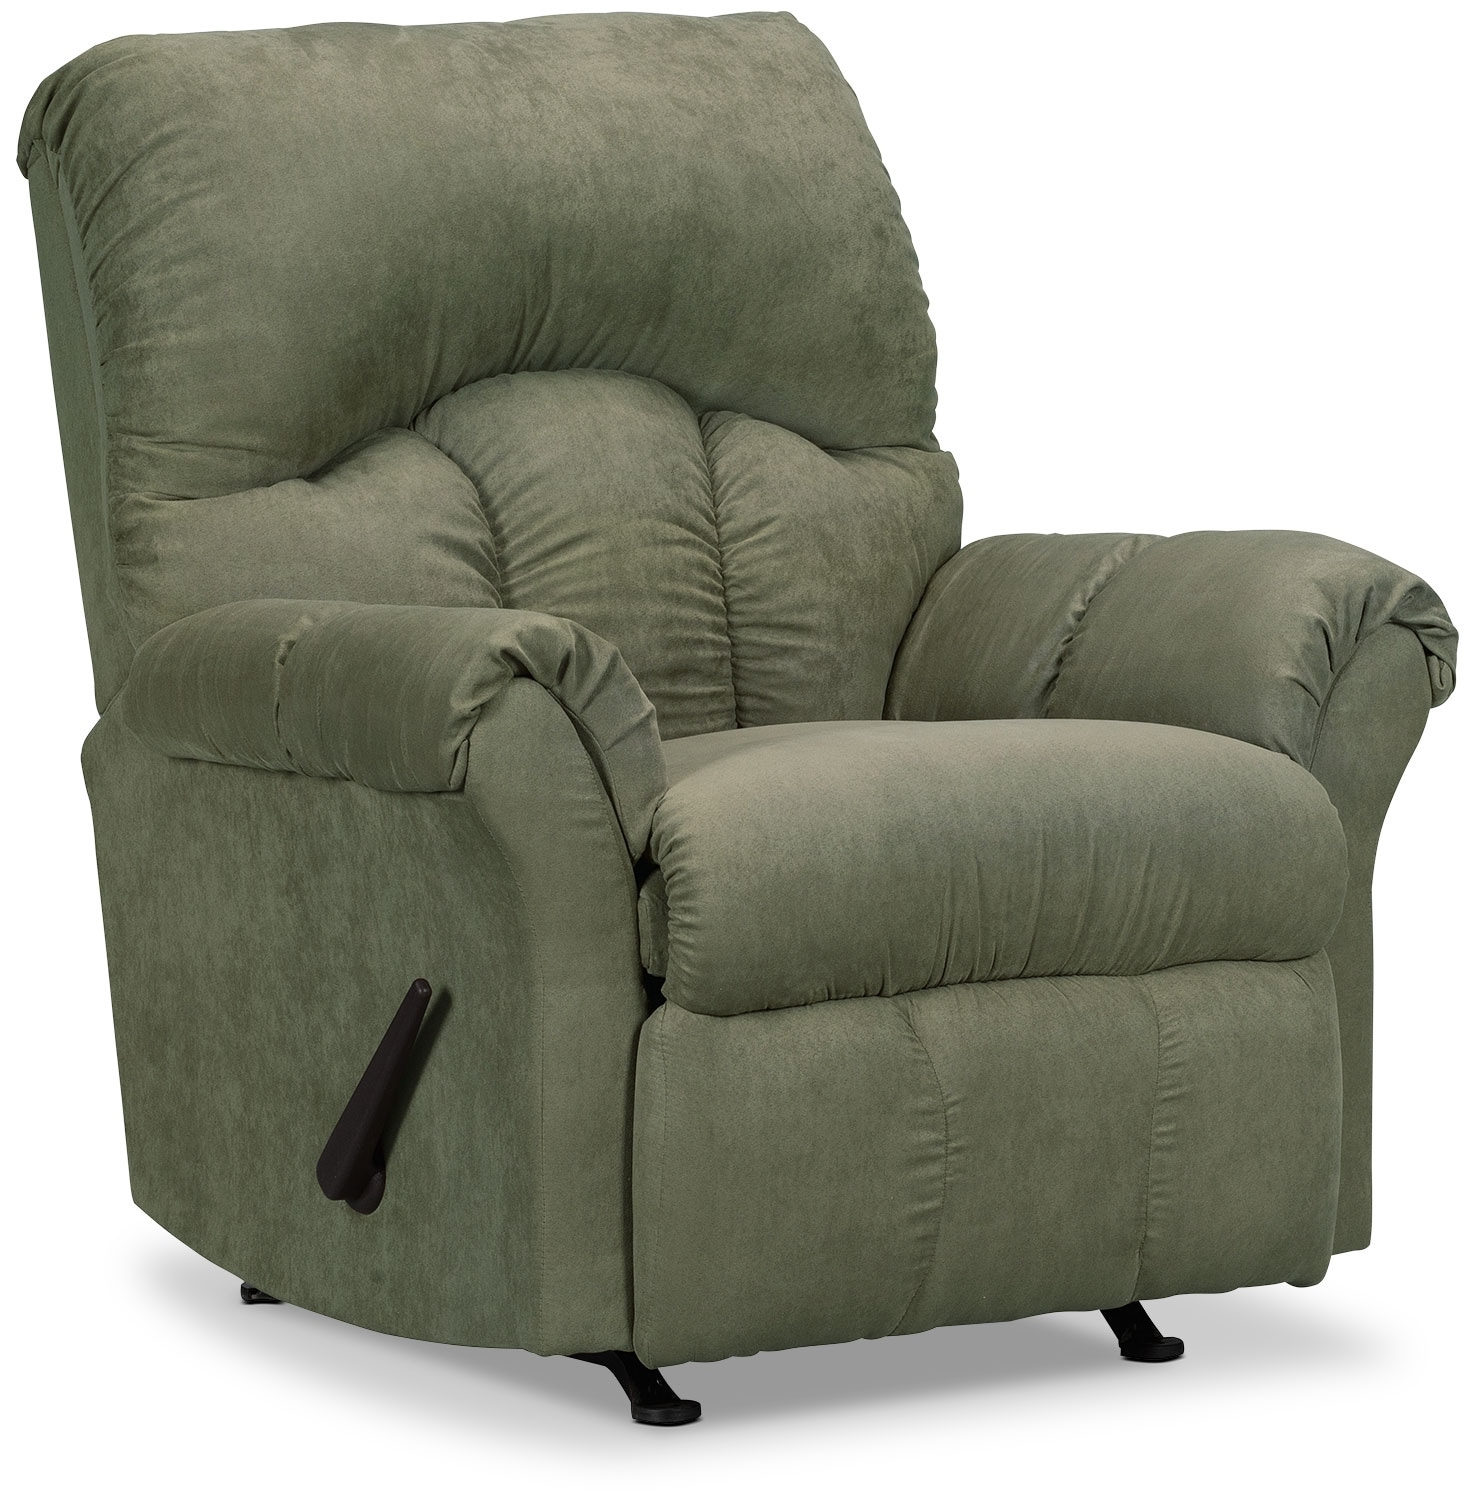 Living Room Furniture - Designed2B Recliner 6734 Microsuede Rocking Chair - Fern